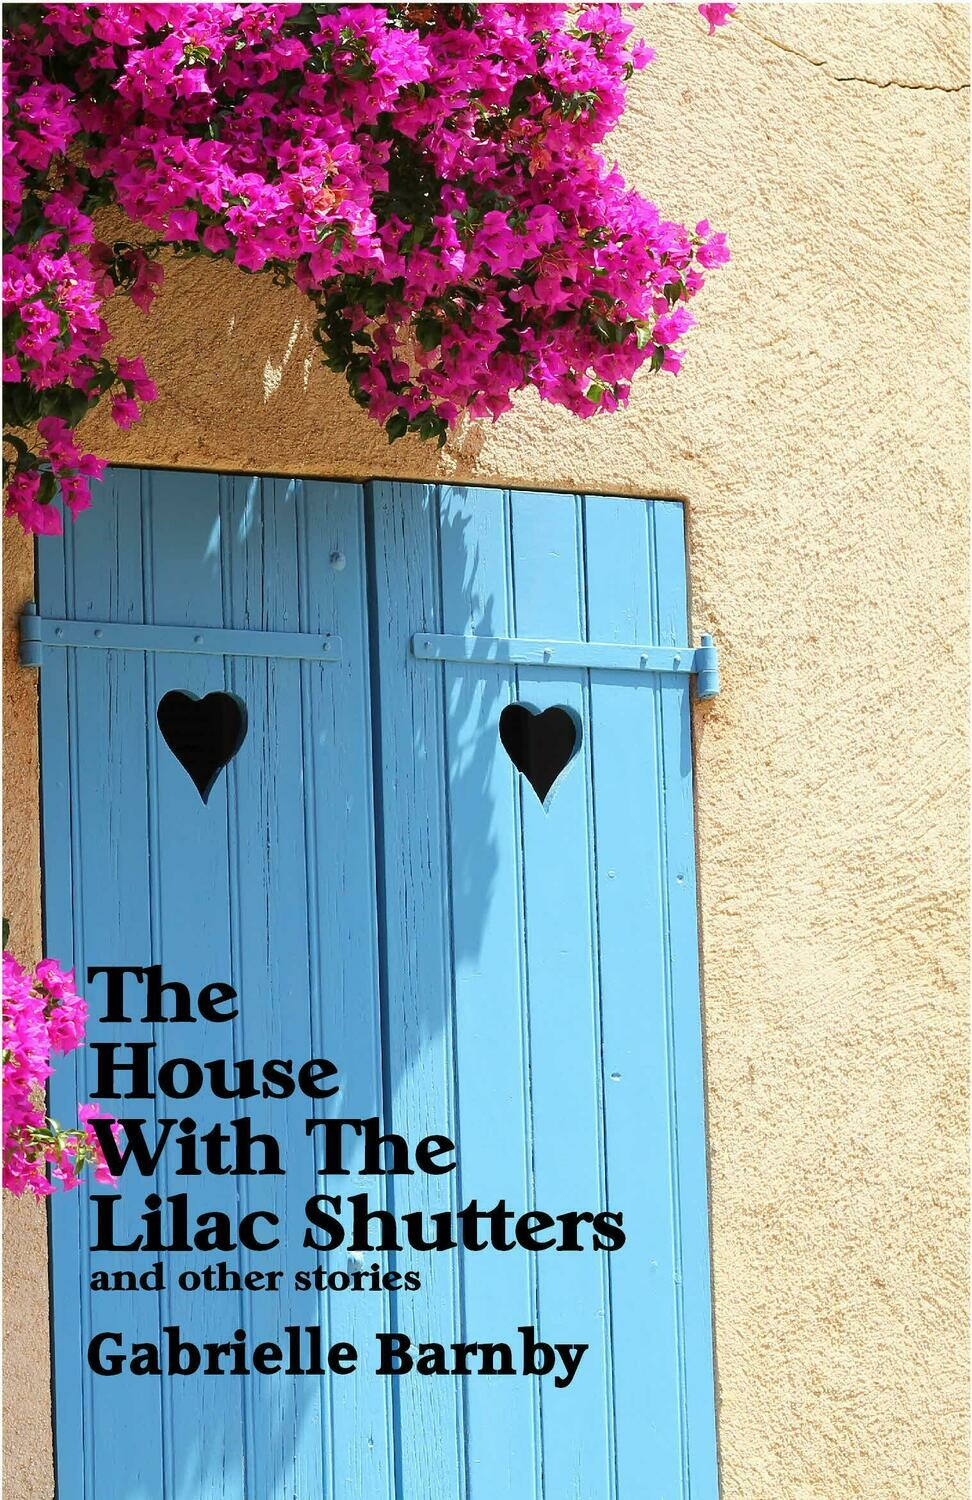 The House with the Lilac Shutters and Other Stories.